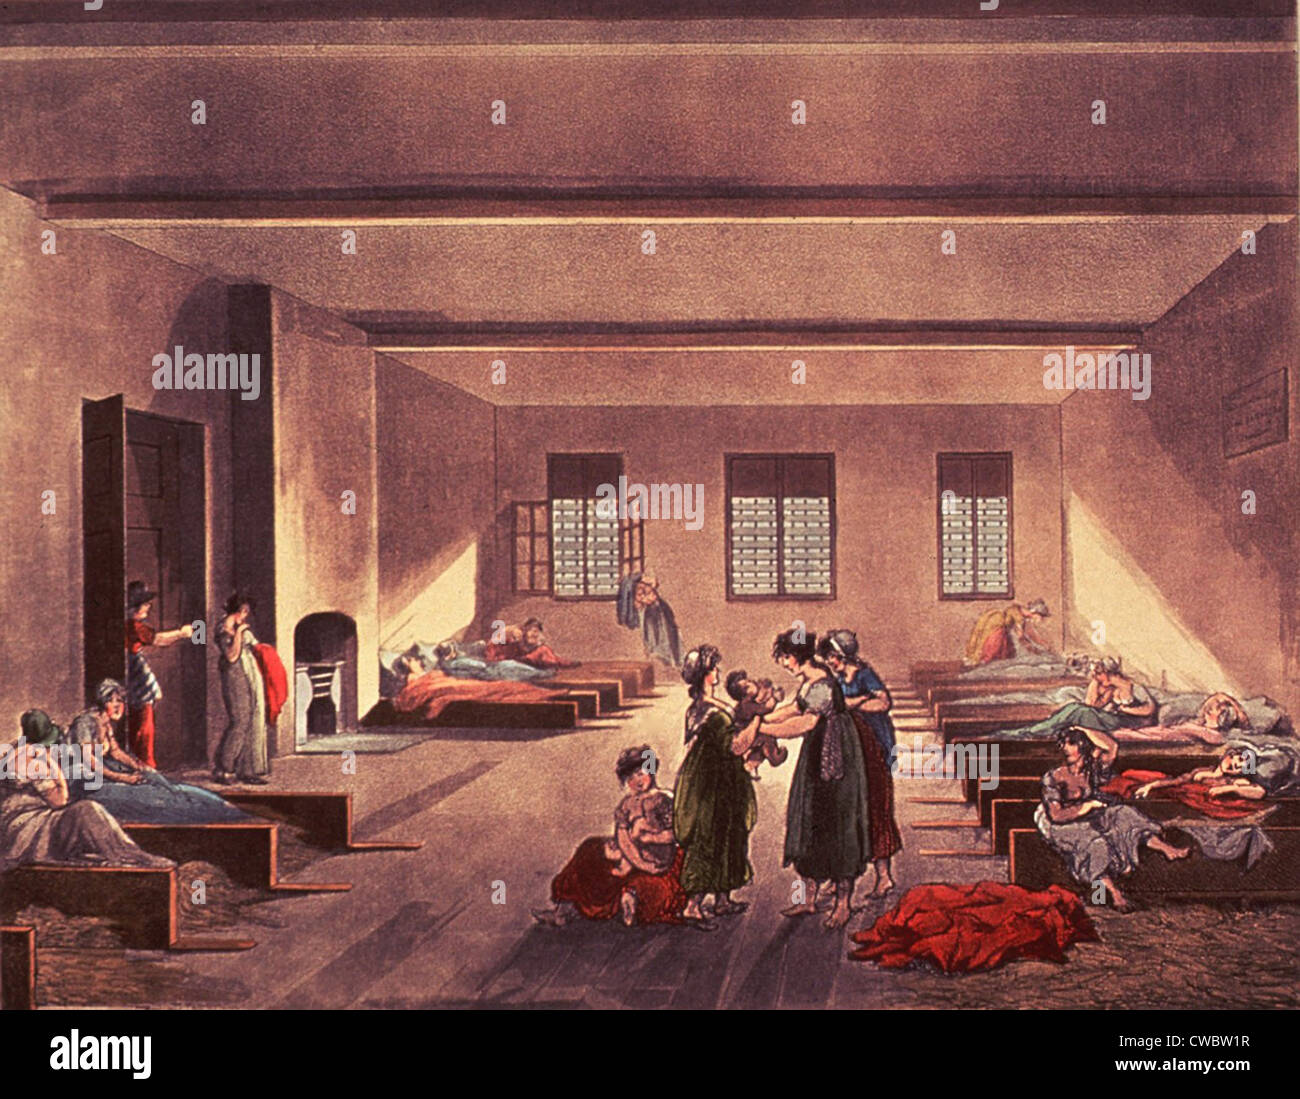 Detention room in London's Bridewell Hospital, for homeless, impoverished, and probably single or unwed mothers. - Stock Image